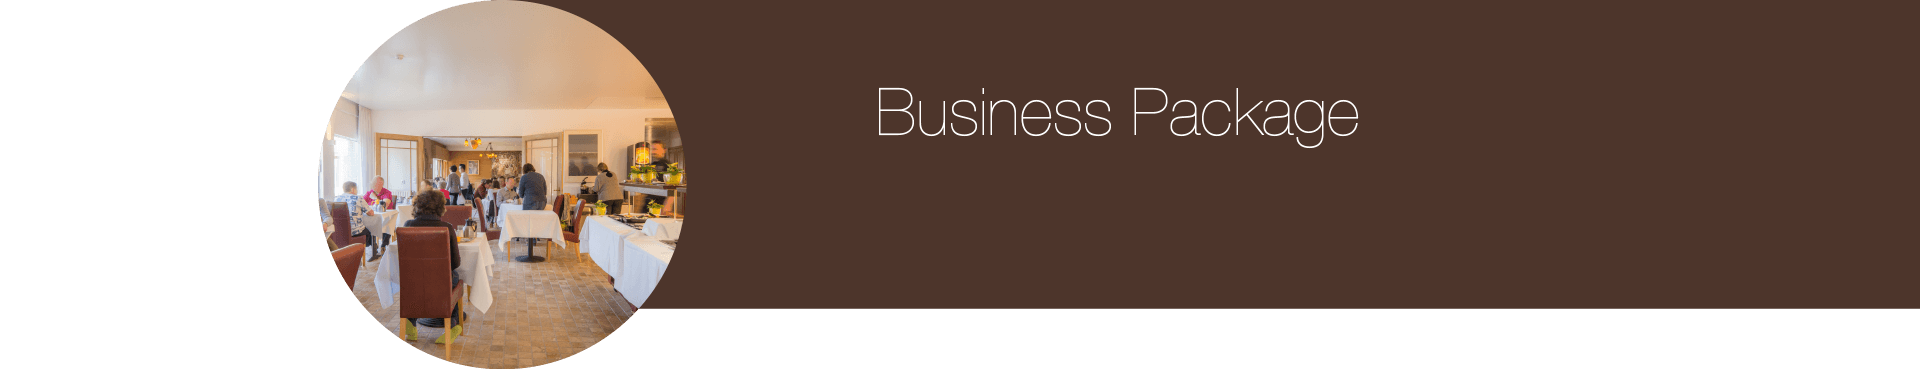 business package header